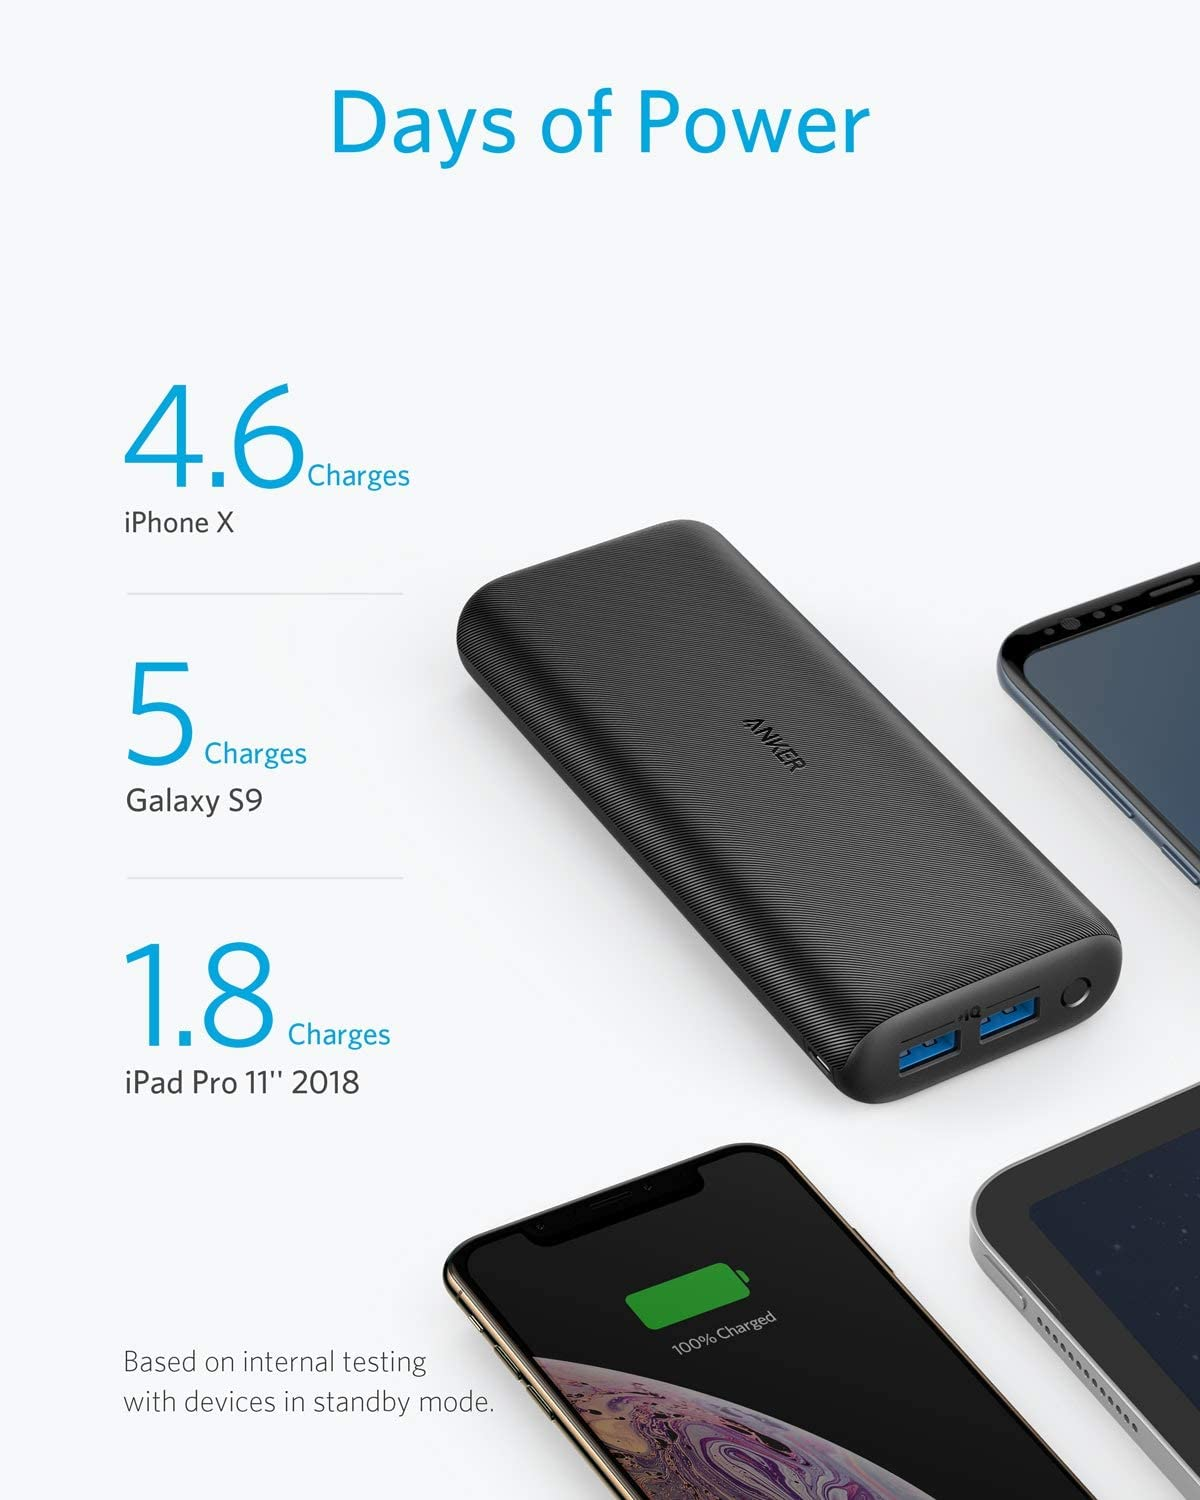 Anker PowerCore 20000 Redux, 20000mAh High Capacity Portable Charger Dual Port 4.8A Output Compact Power Bank for iPhone, Samsung Galaxy, and More - Amazon.com